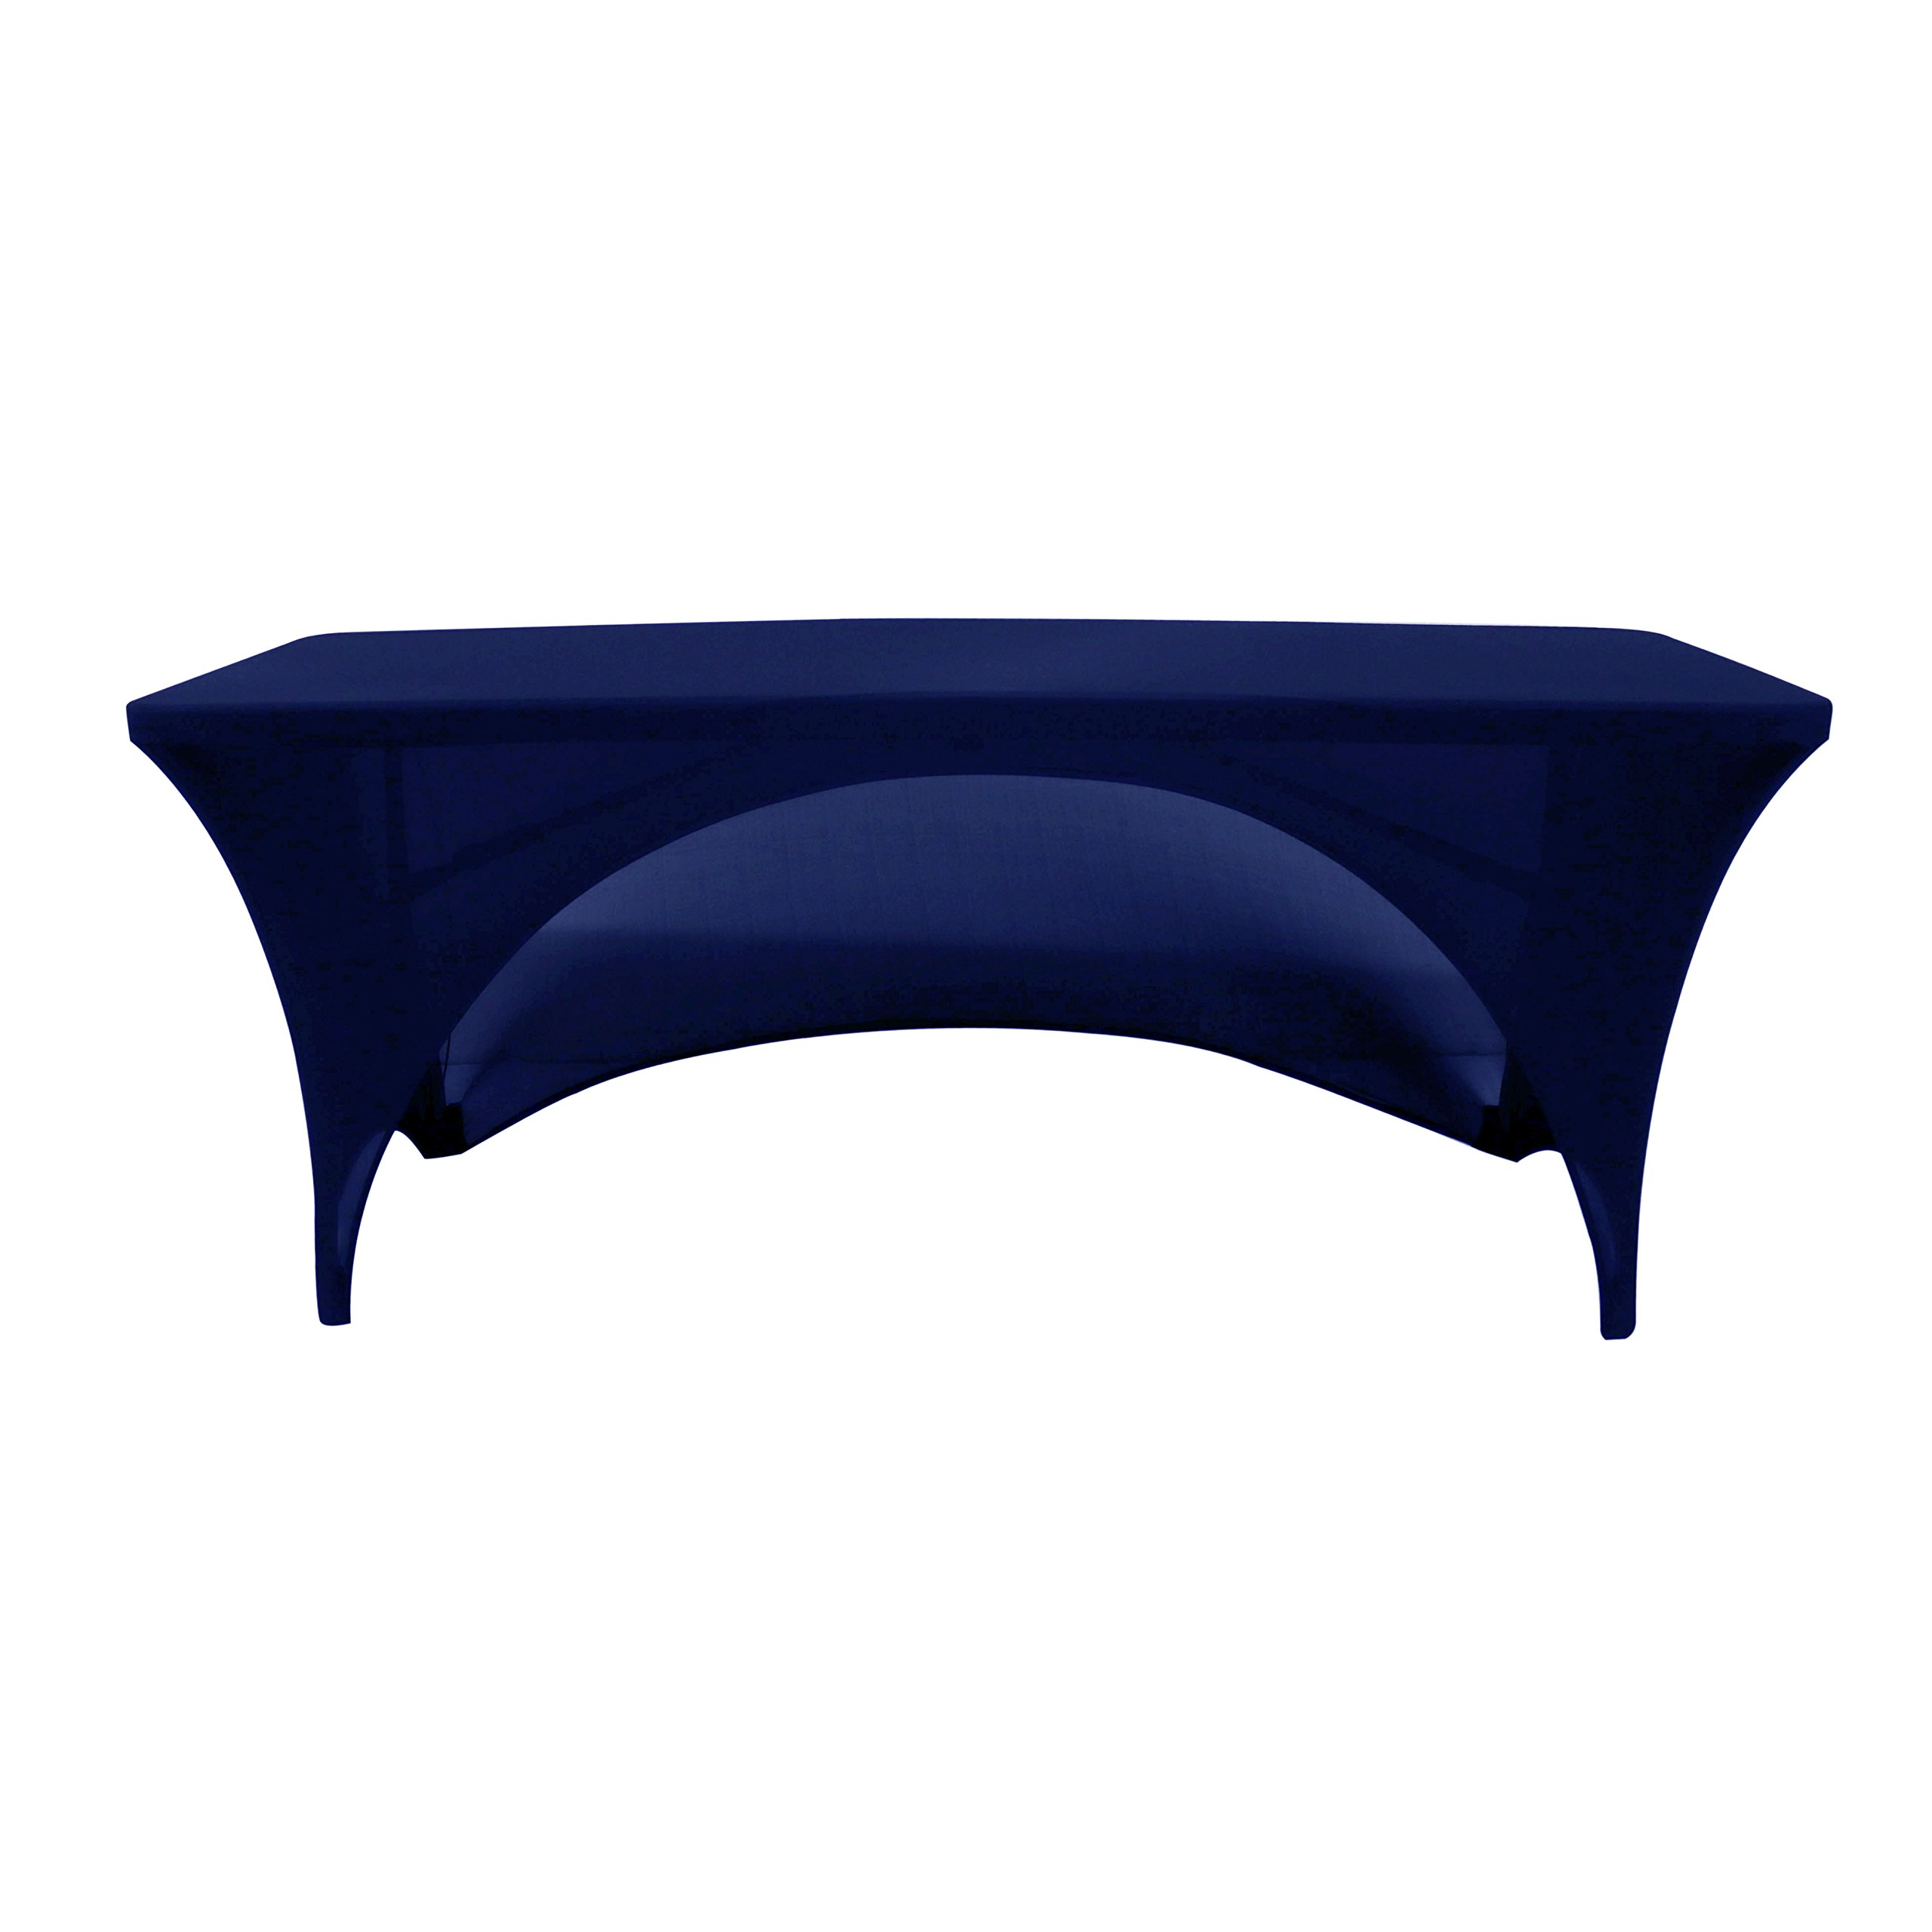 Your Chair Covers - 6 Ft Rectangular Open Back Stretch Tablecloth - Navy Blue